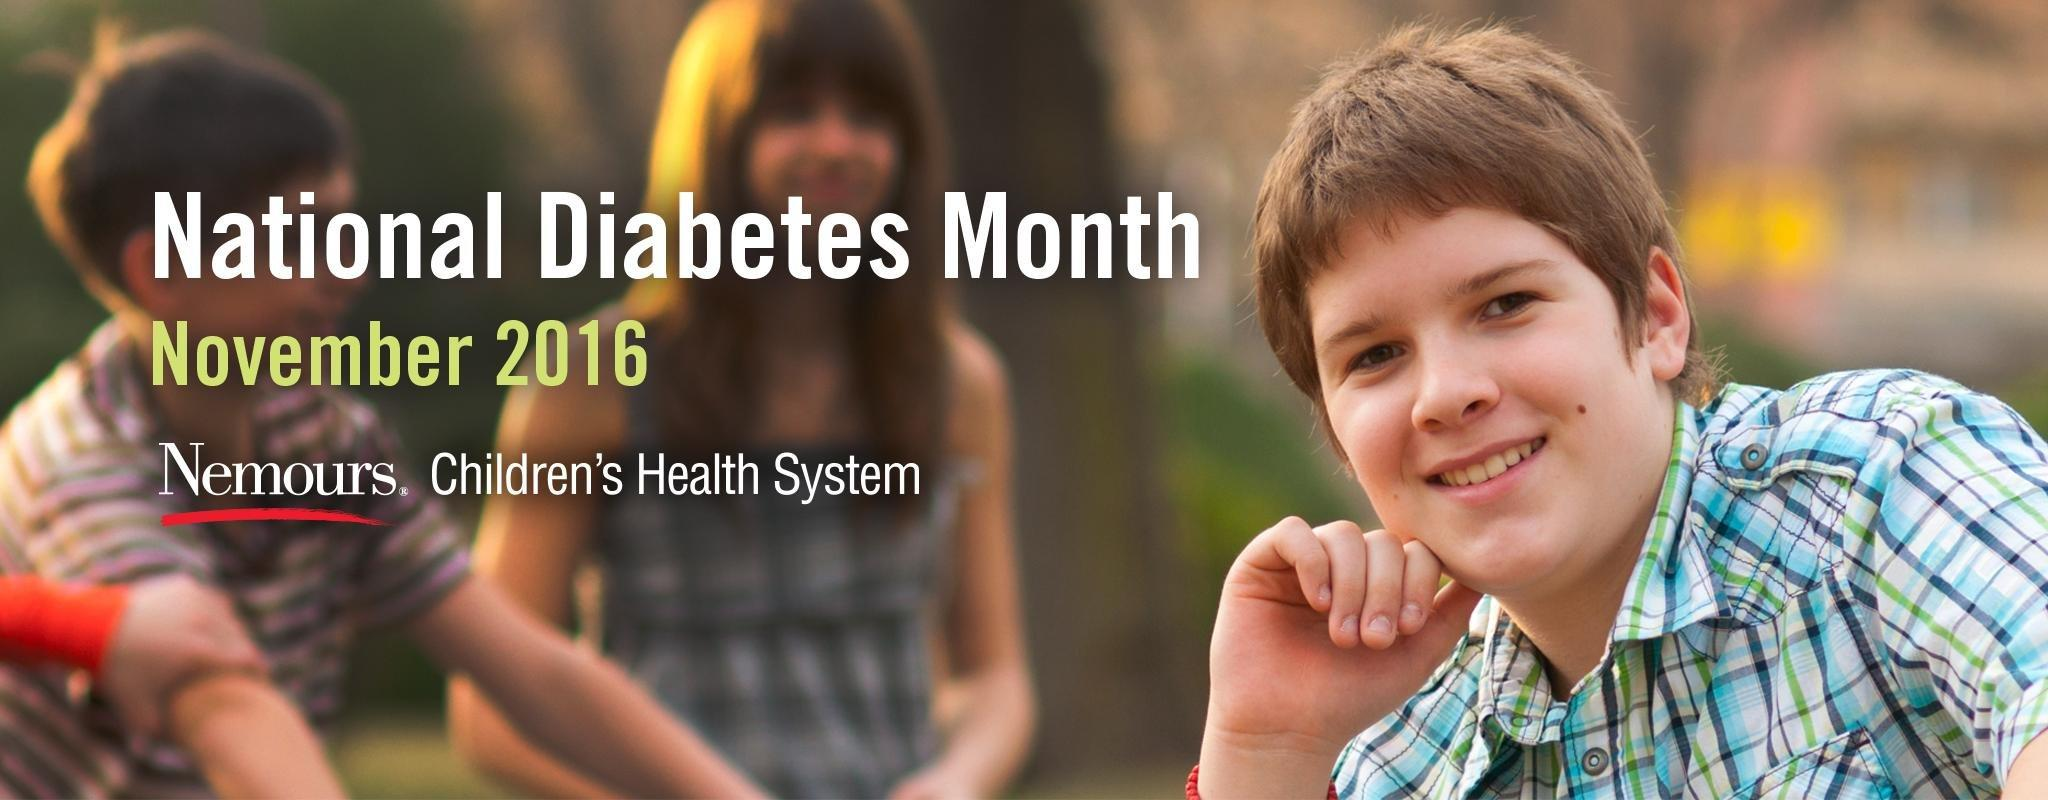 Type 1 Diabetes: Myths And Facts